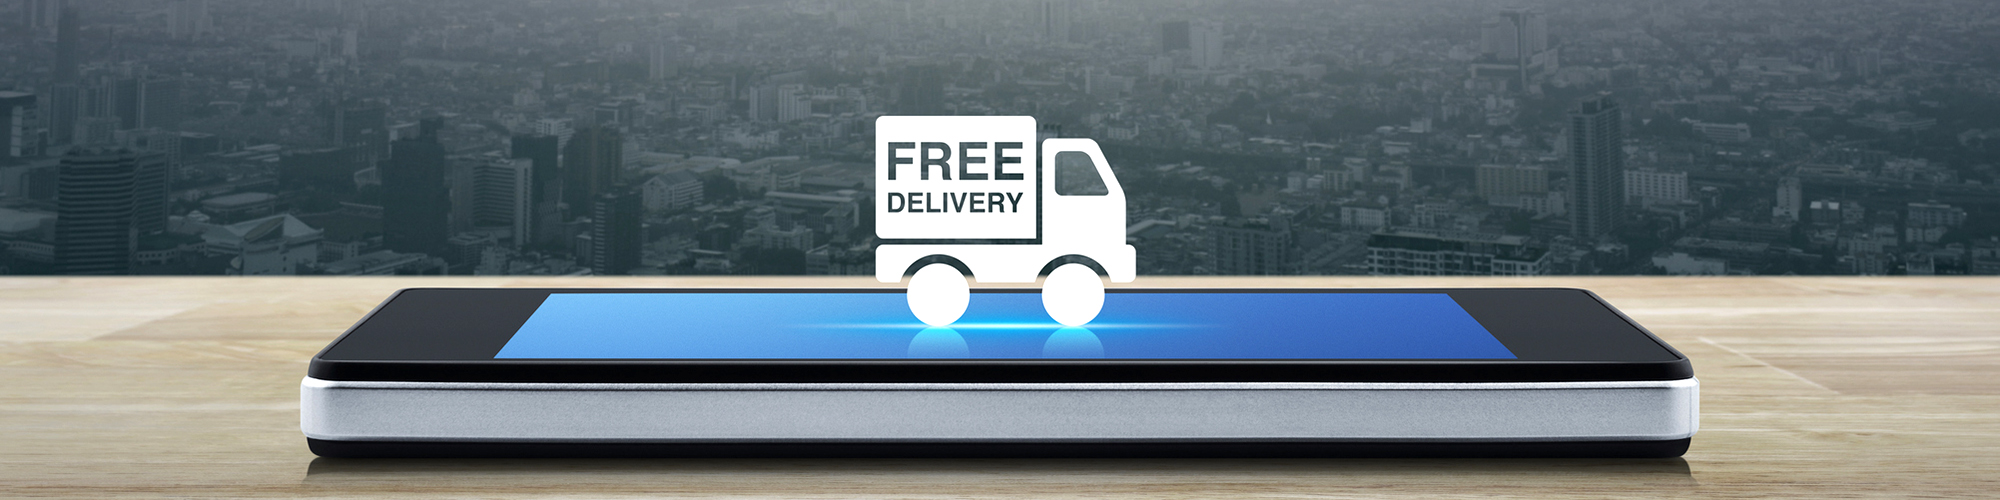 Sophos free freight promotion